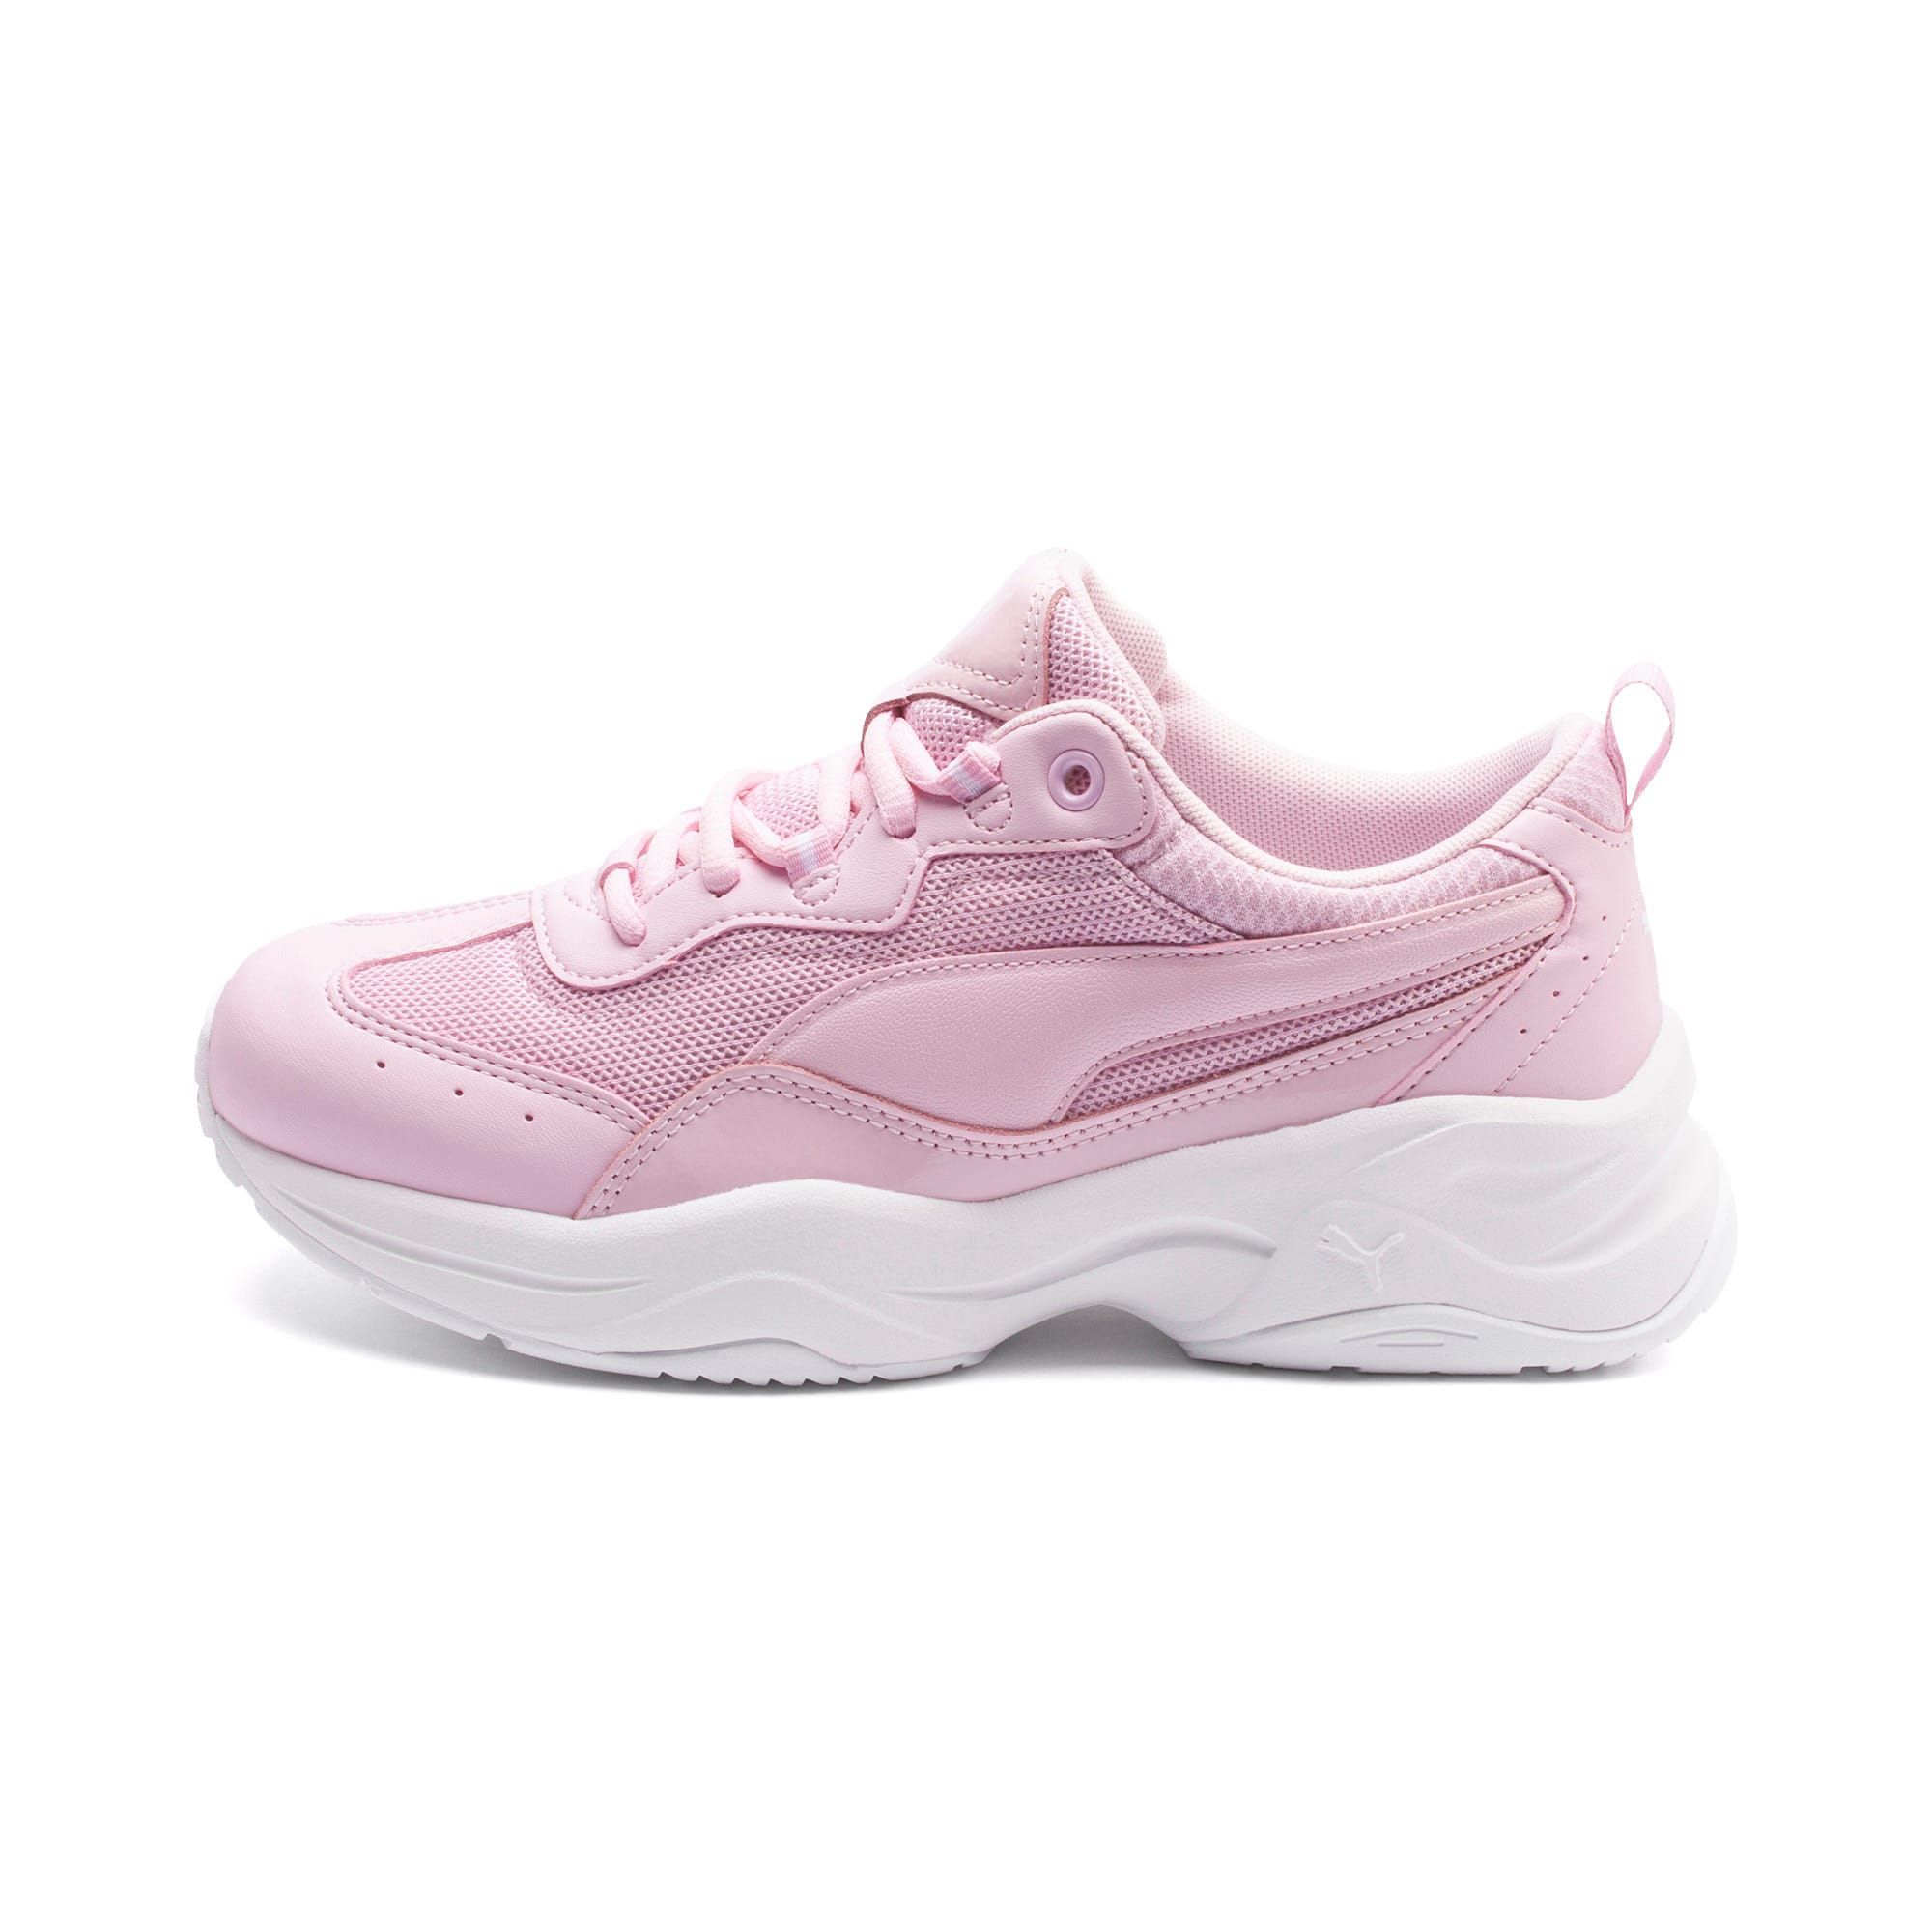 Thumbnail 1 of Cilia Patent Women's Trainers, Pink Lady-Puma White, medium